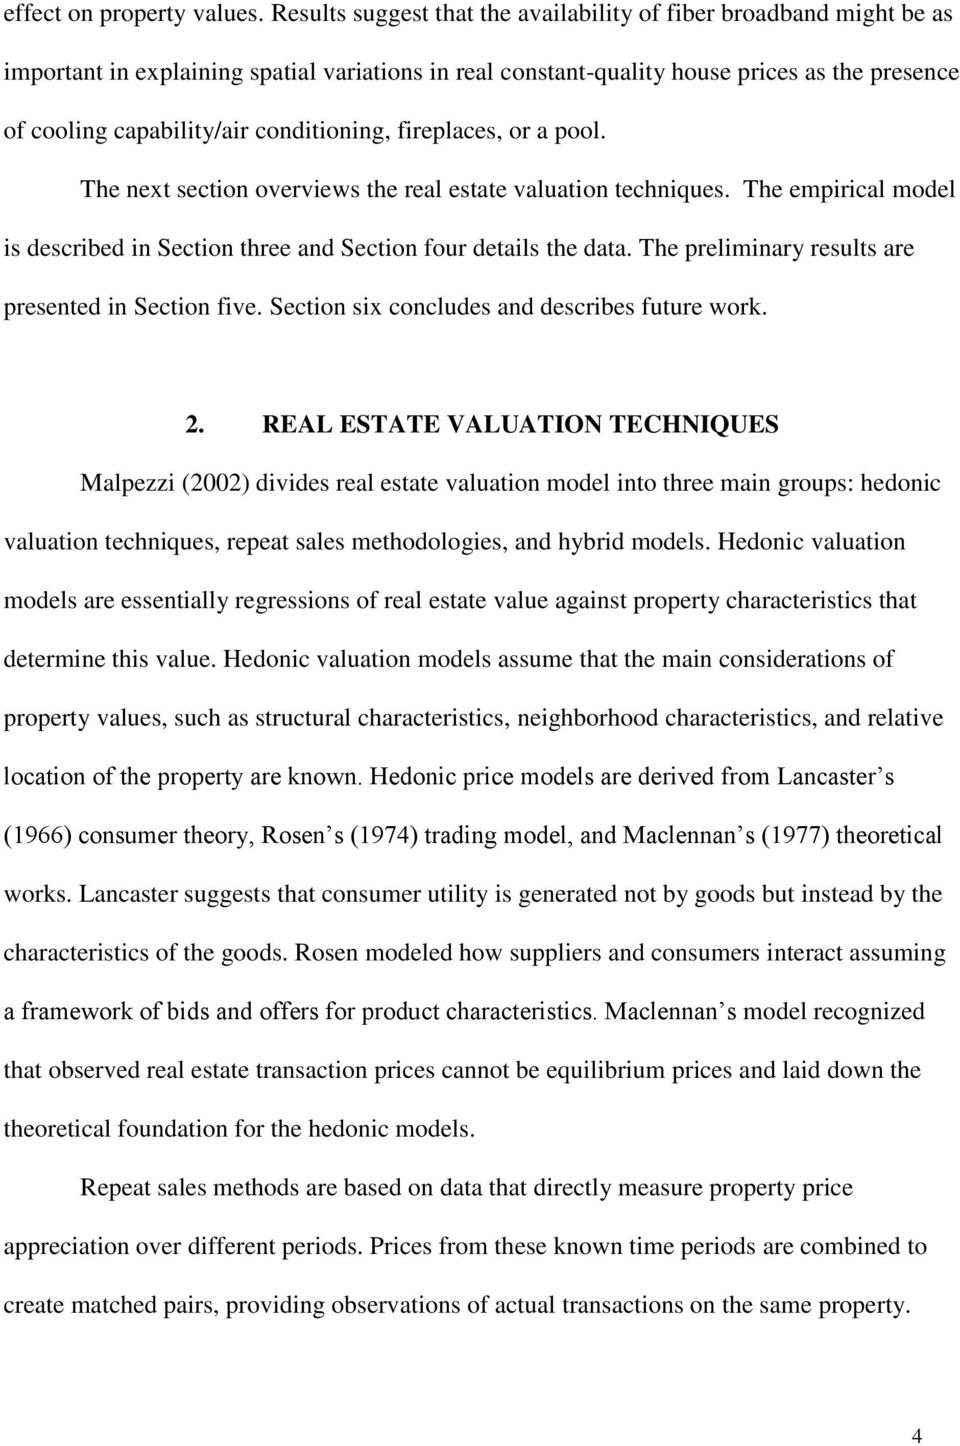 conditioning, fireplaces, or a pool. The next section overviews the real estate valuation techniques. The empirical model is described in Section three and Section four details the data.